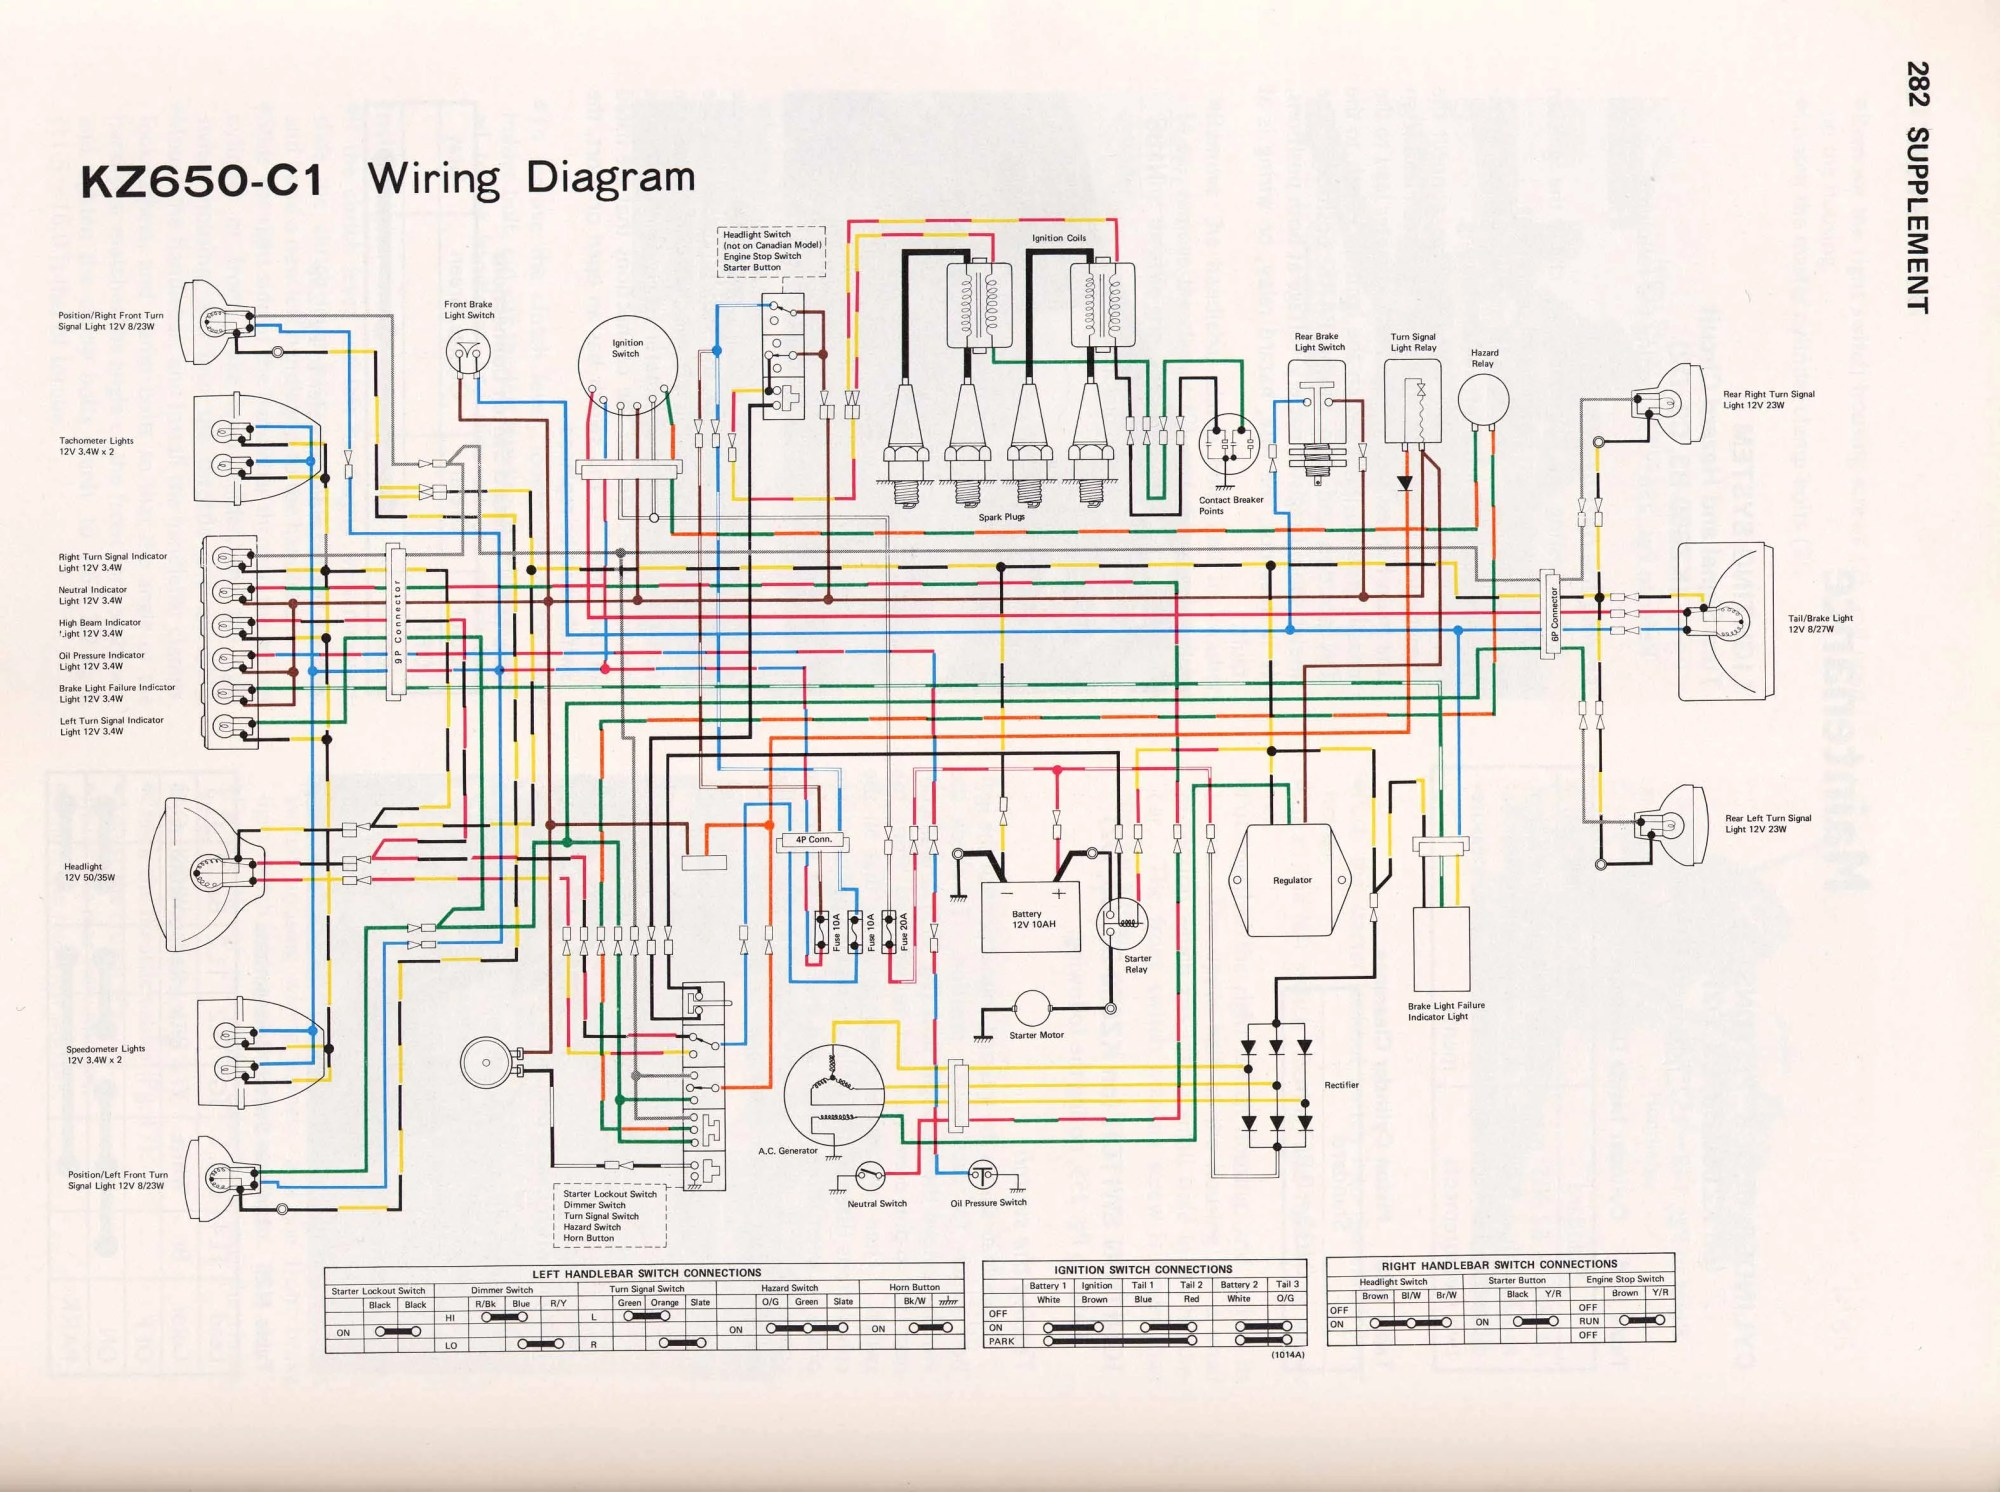 hight resolution of 82 kz1000 wiring diagram wiring diagram centre1986 kz1000 wiring diagram wiring diagram autovehicle1986 kawasaki kz650 wiring